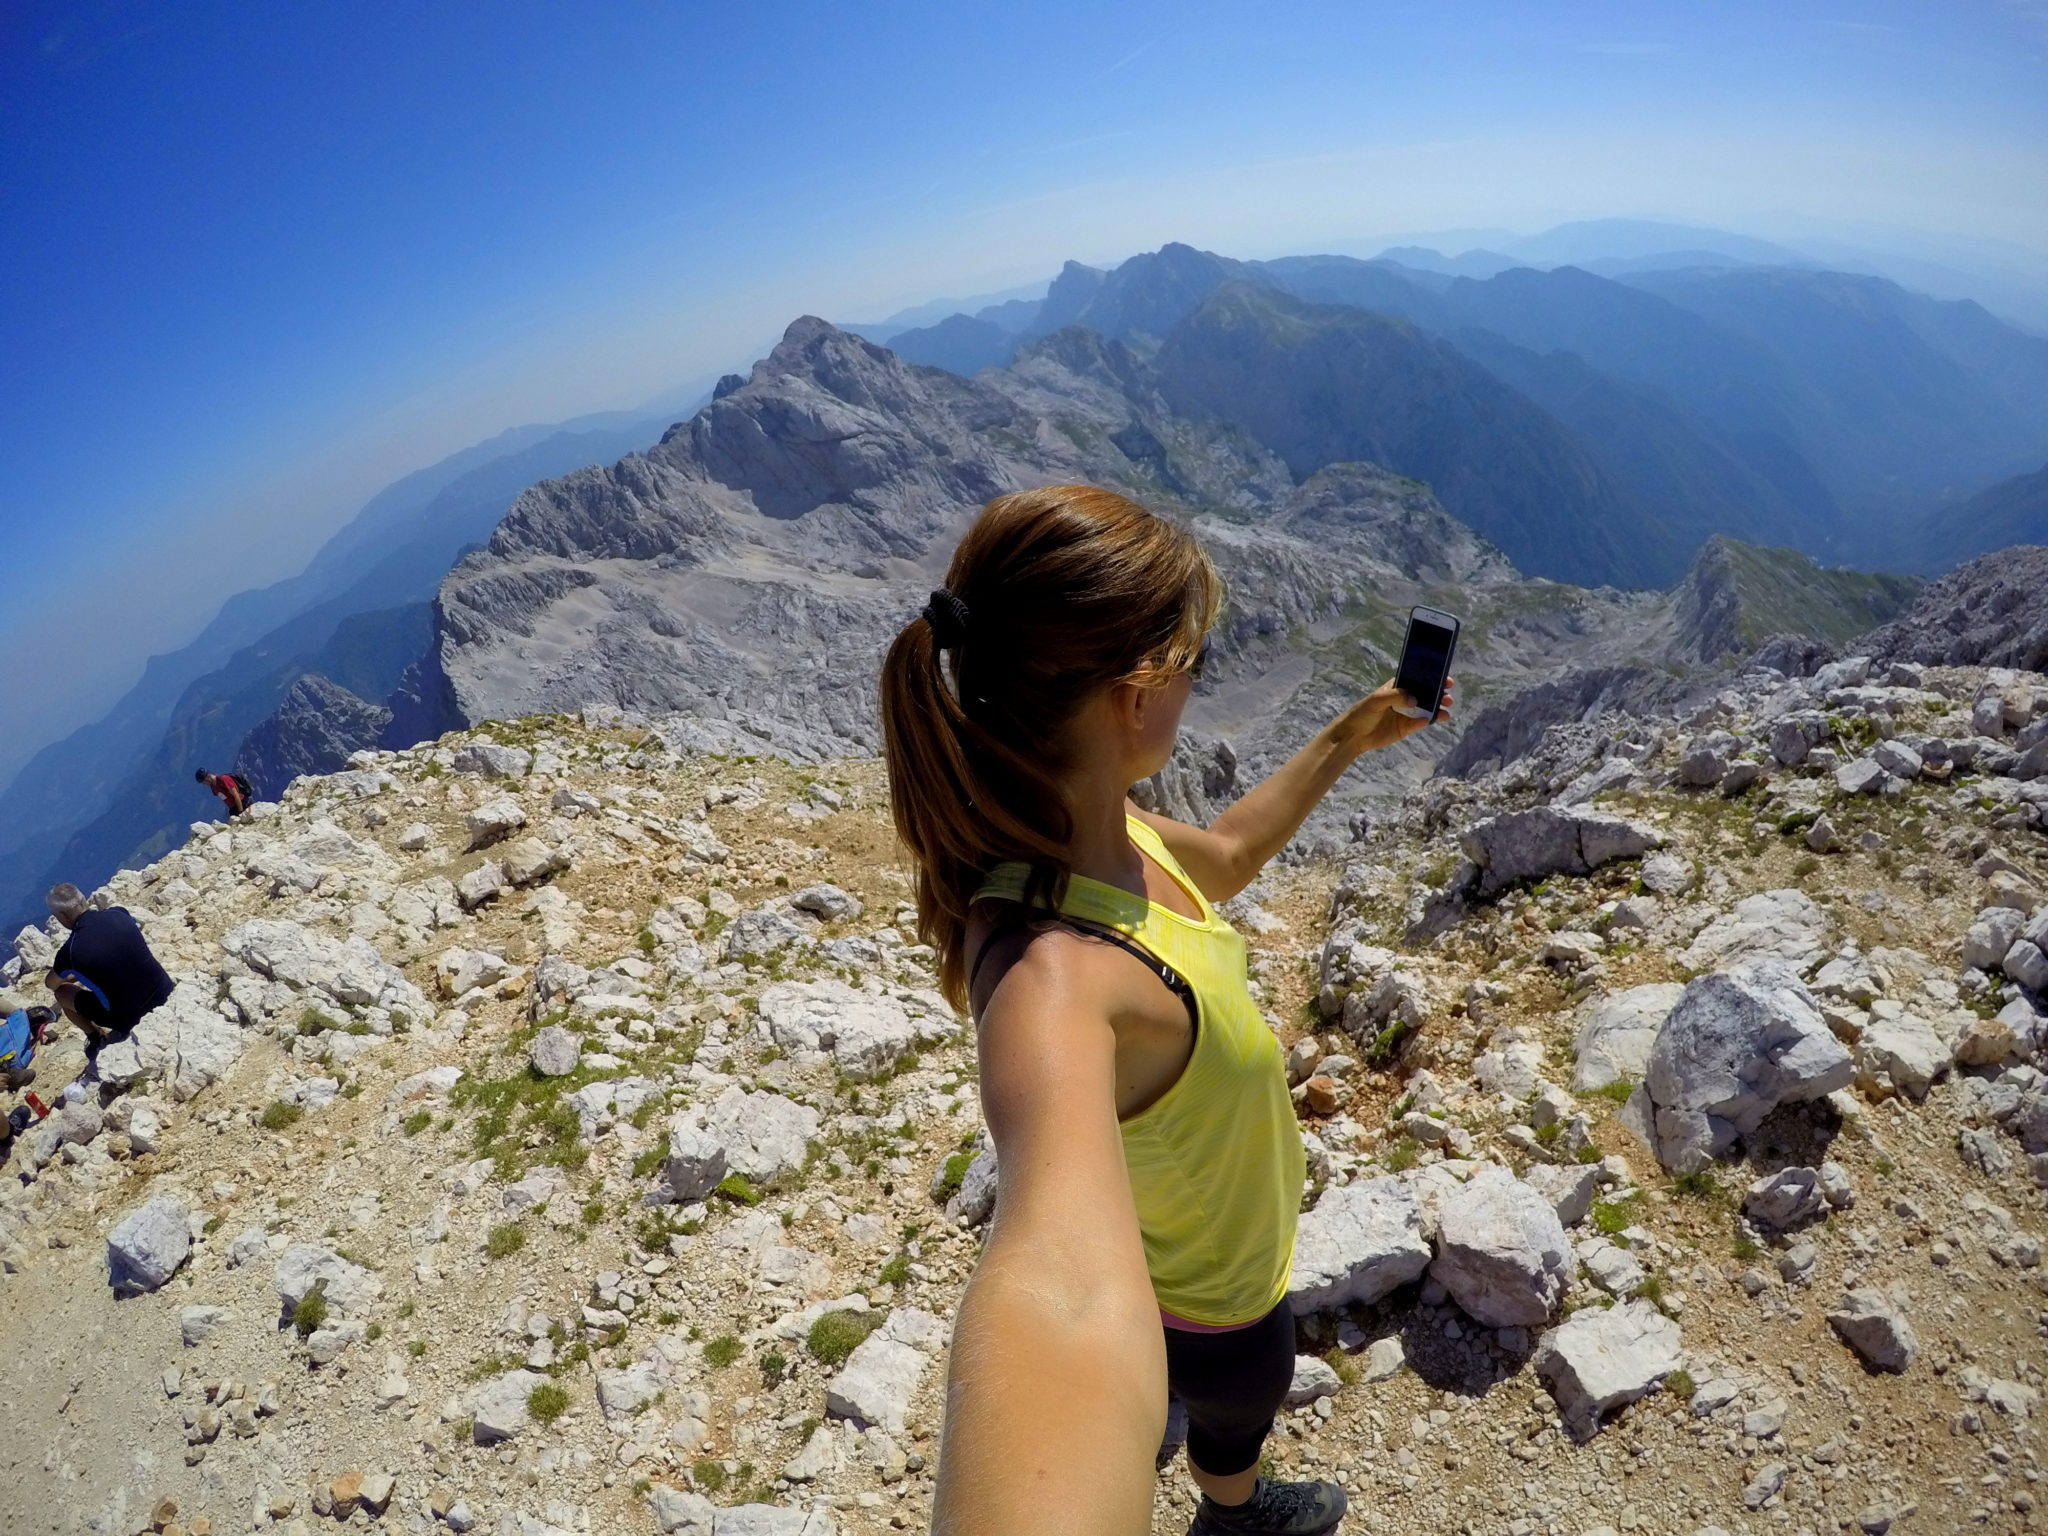 At the top of Mt. Grintovec, Slovenia